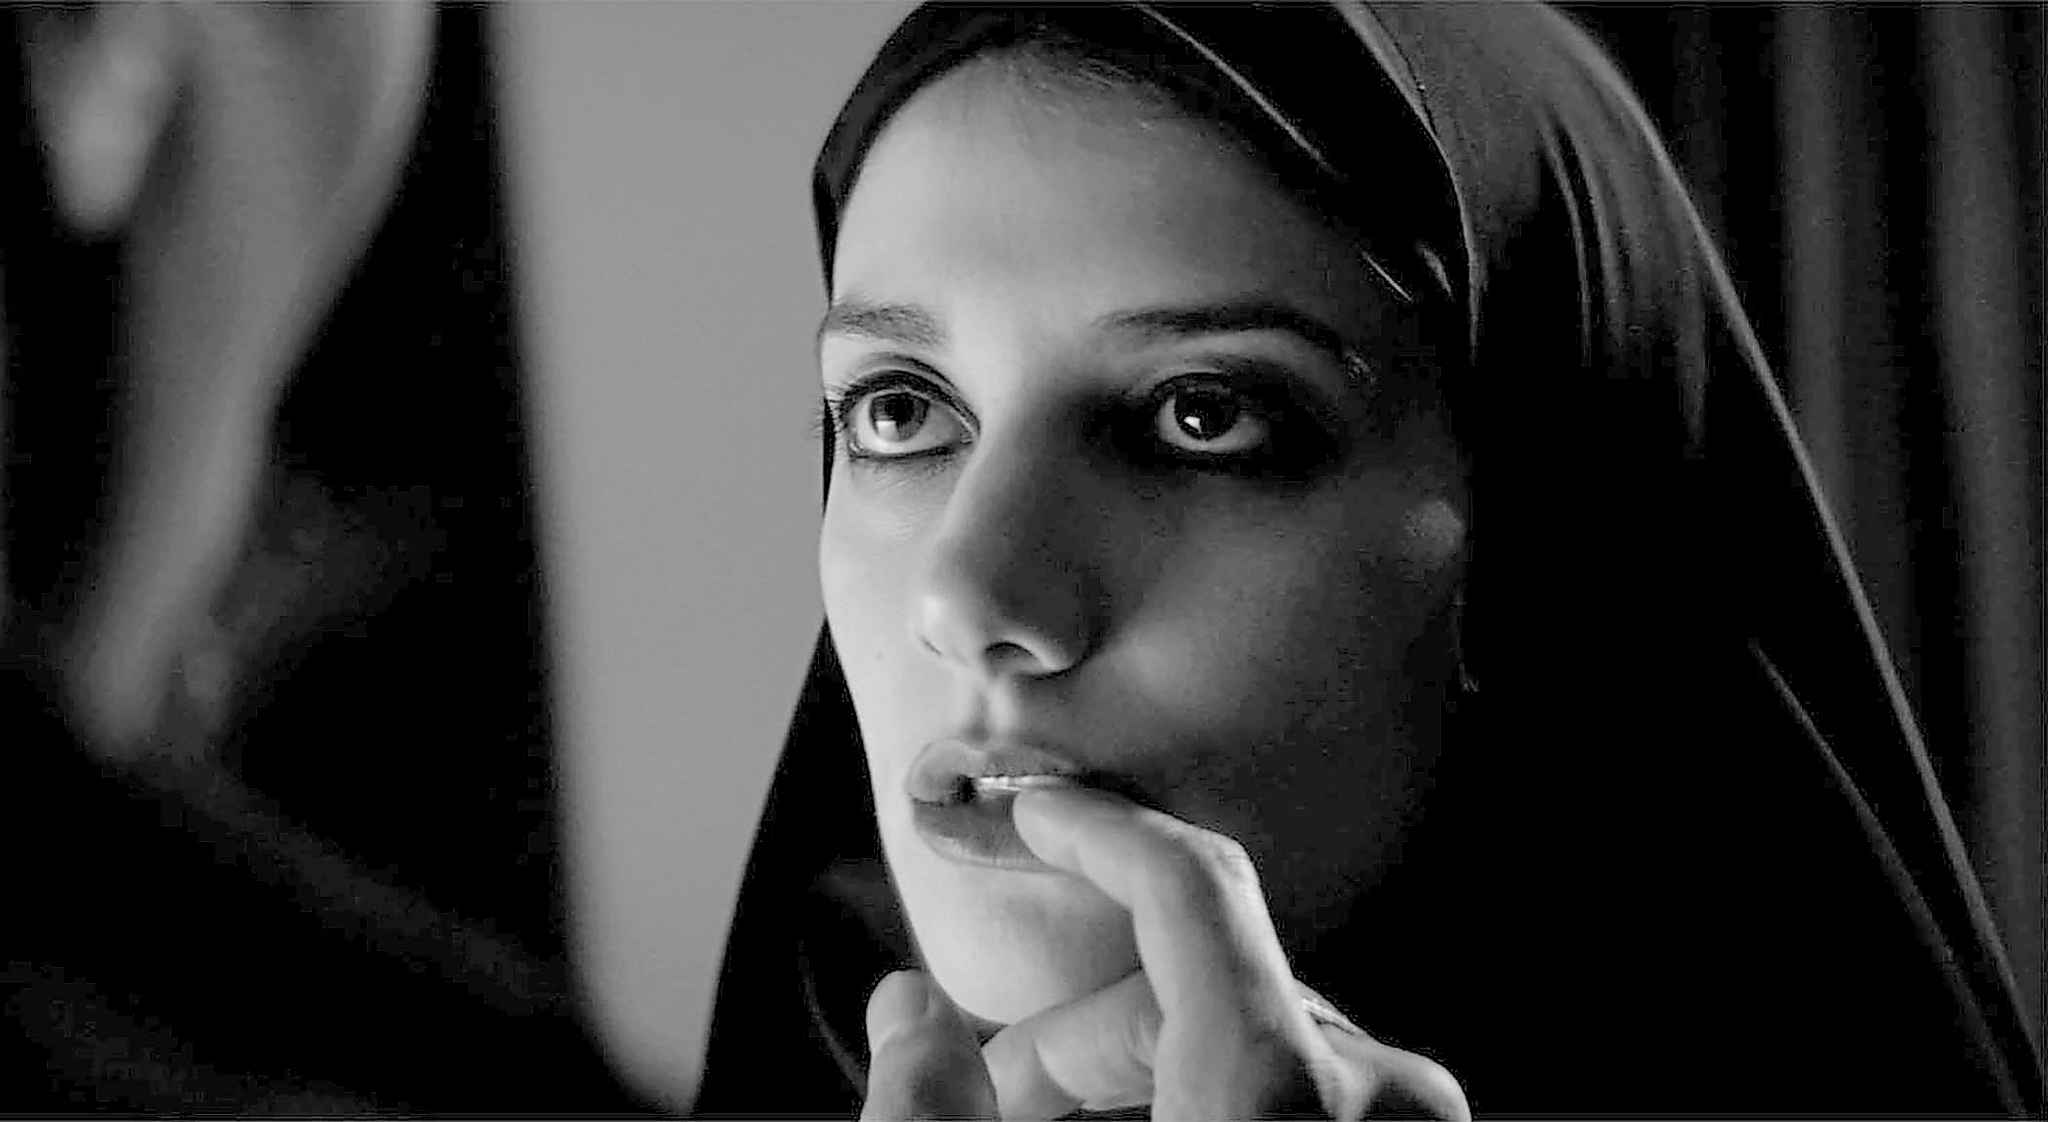 Sheila Vand is a vampire in A Girl Walks Home Alone at Night. (Kino Lorber Inc.)